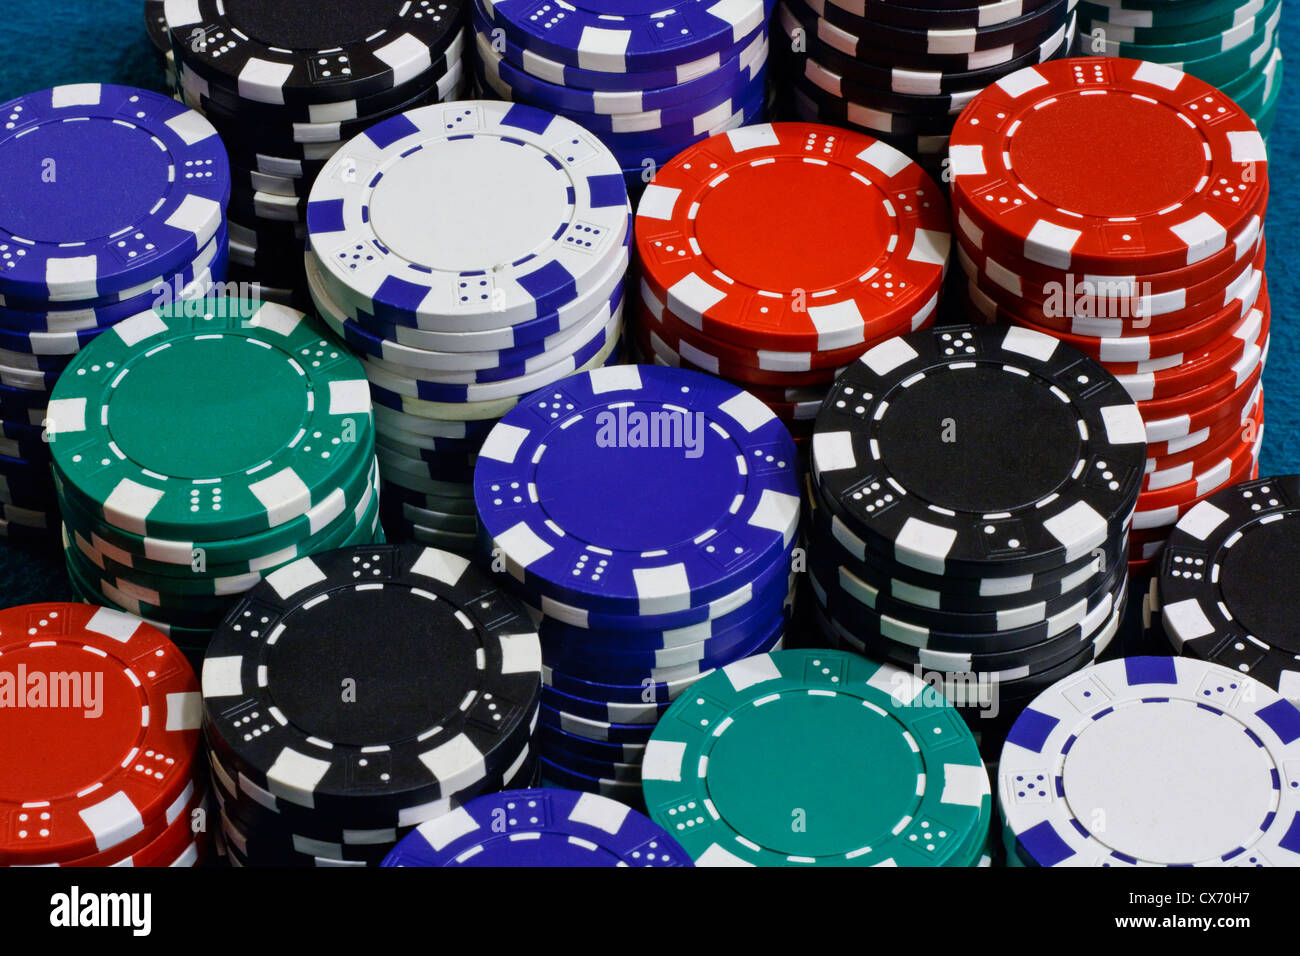 Poker chips stacked on card table - Stock Image